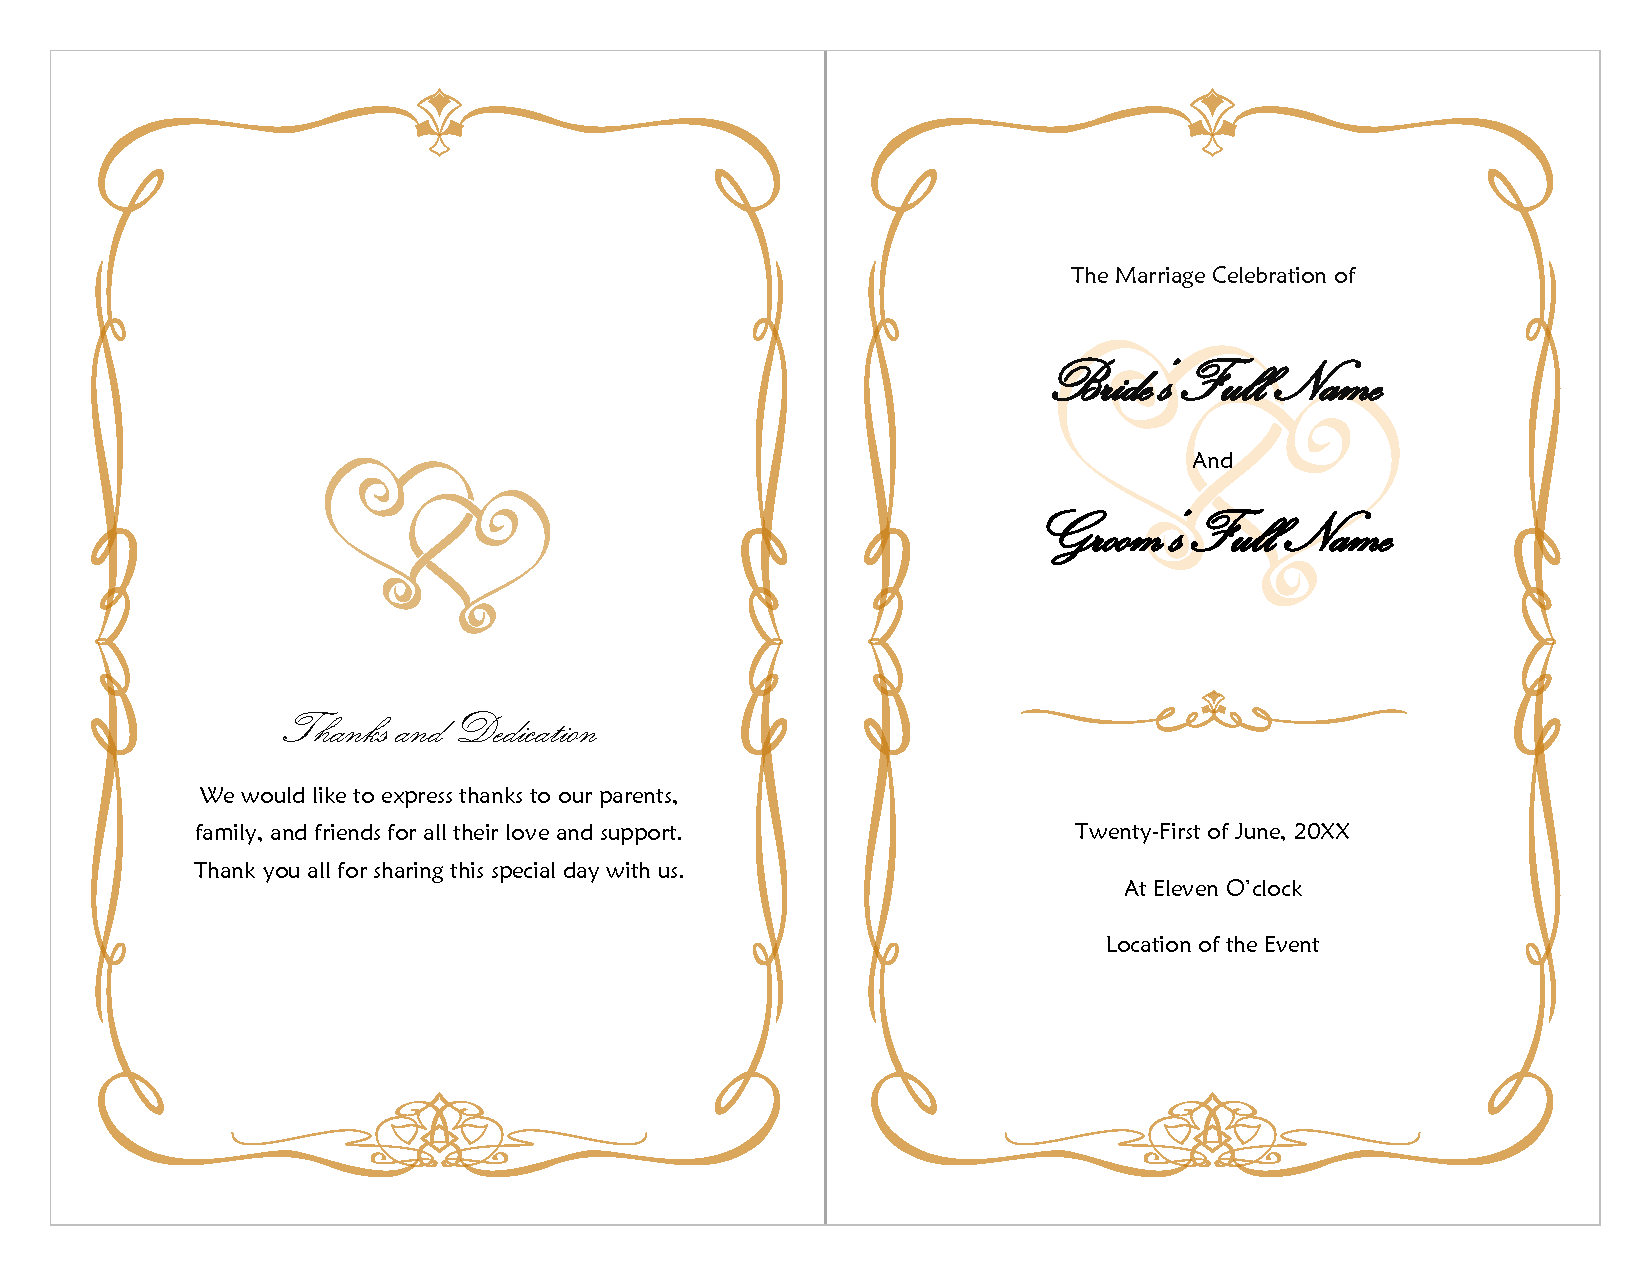 wedding invitation latest trend wedding decorating wedding borders